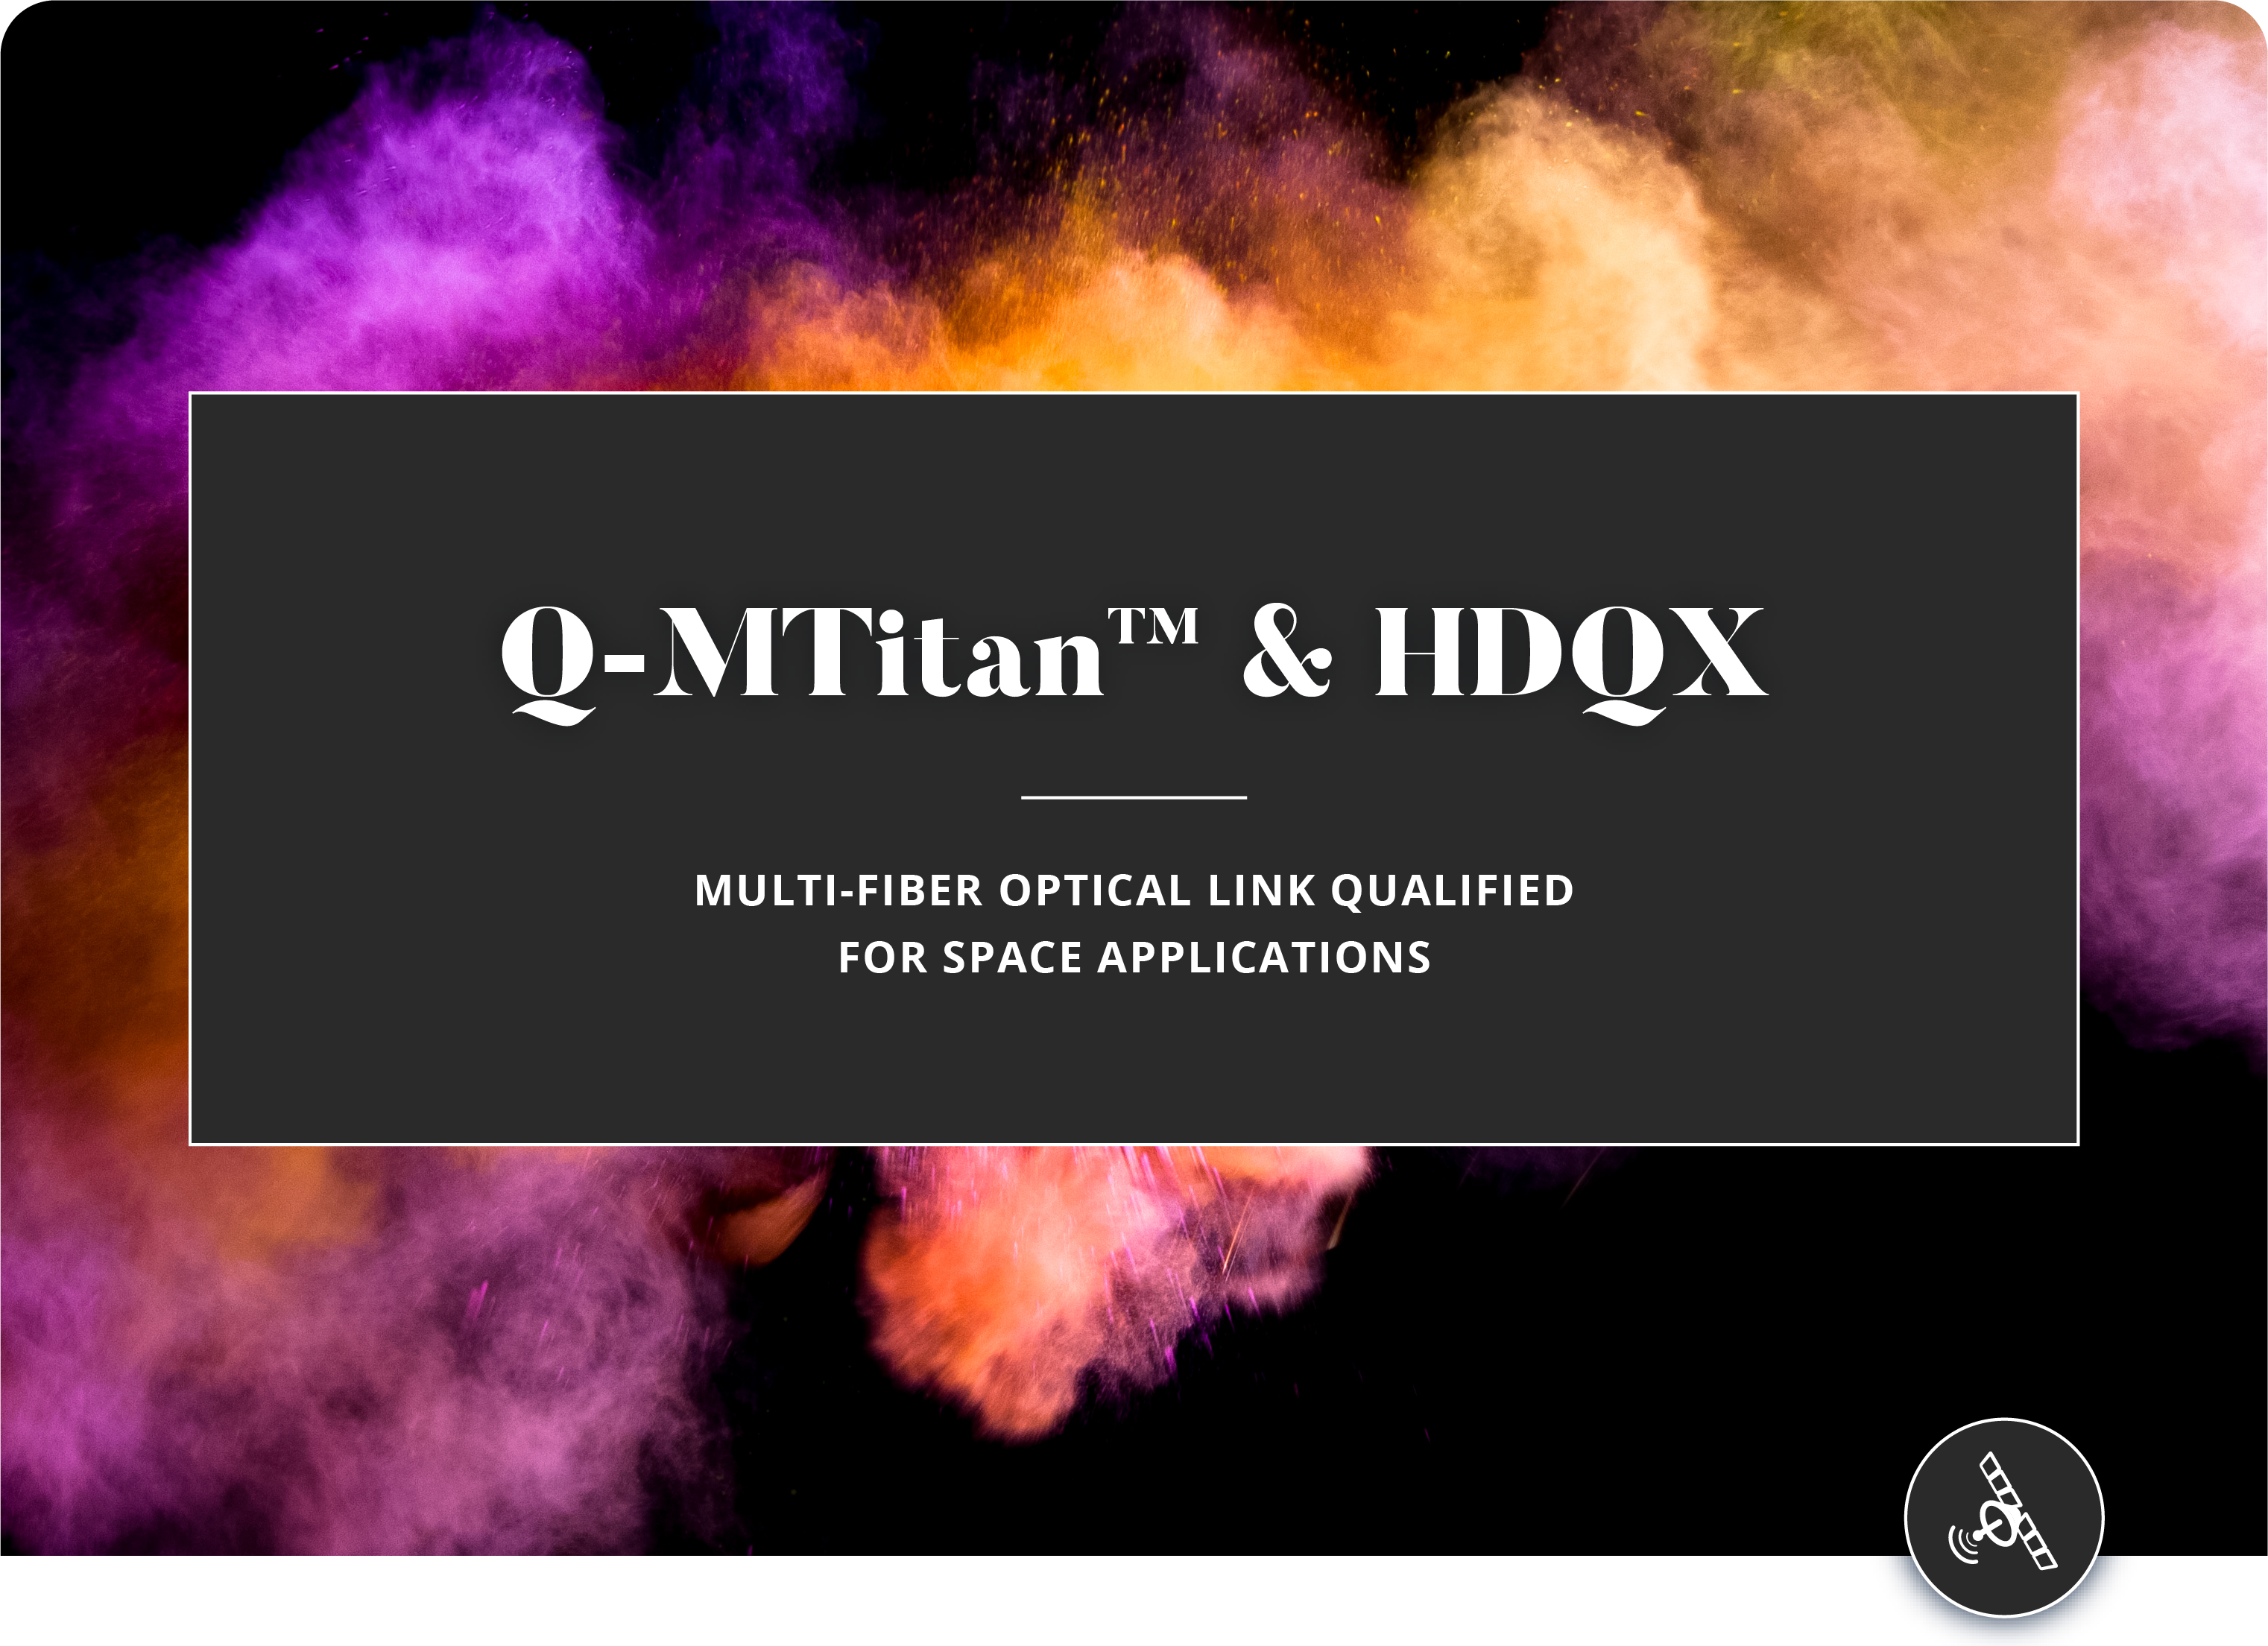 Multi-fiber Optical Link for Space Applications